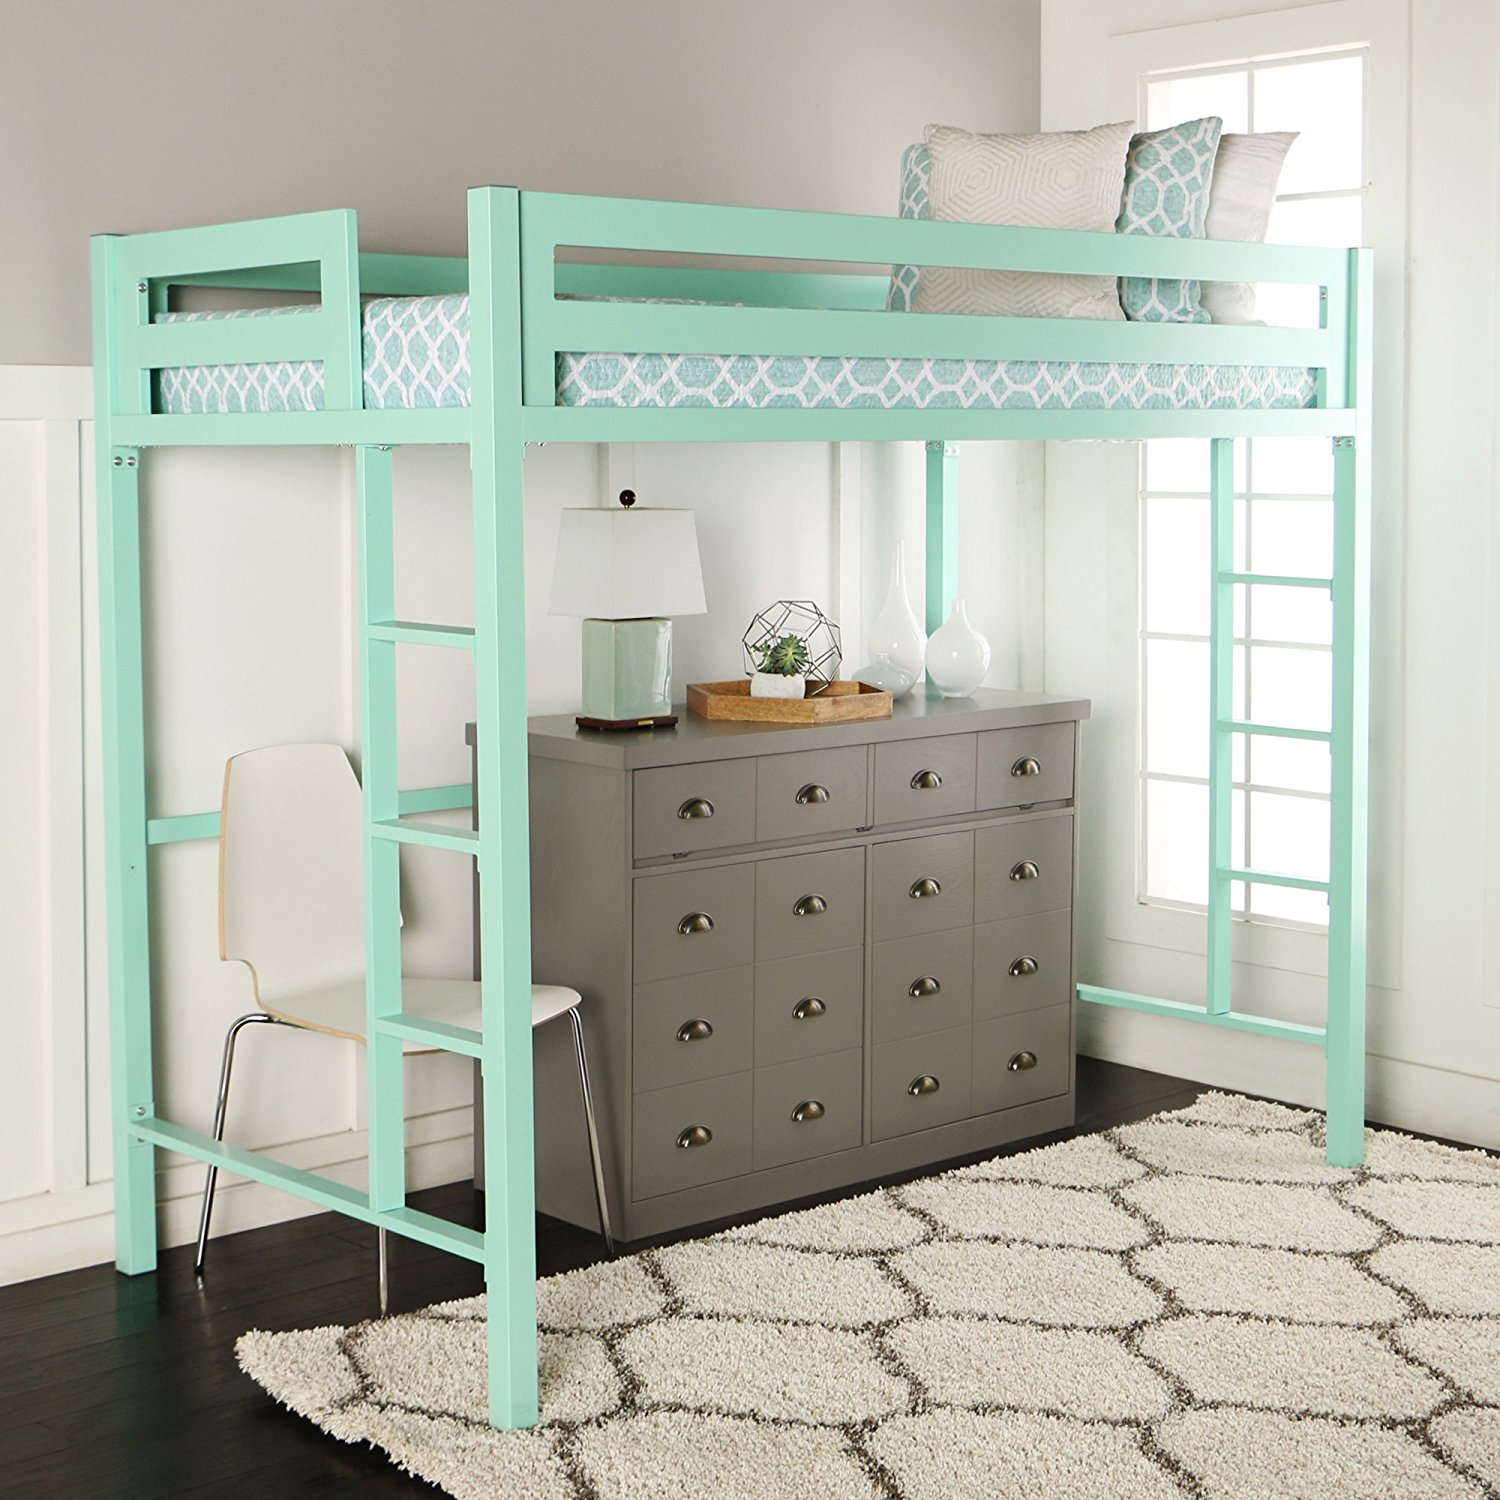 WE Furniture Premium Twin Metal Loft Bed, Mint